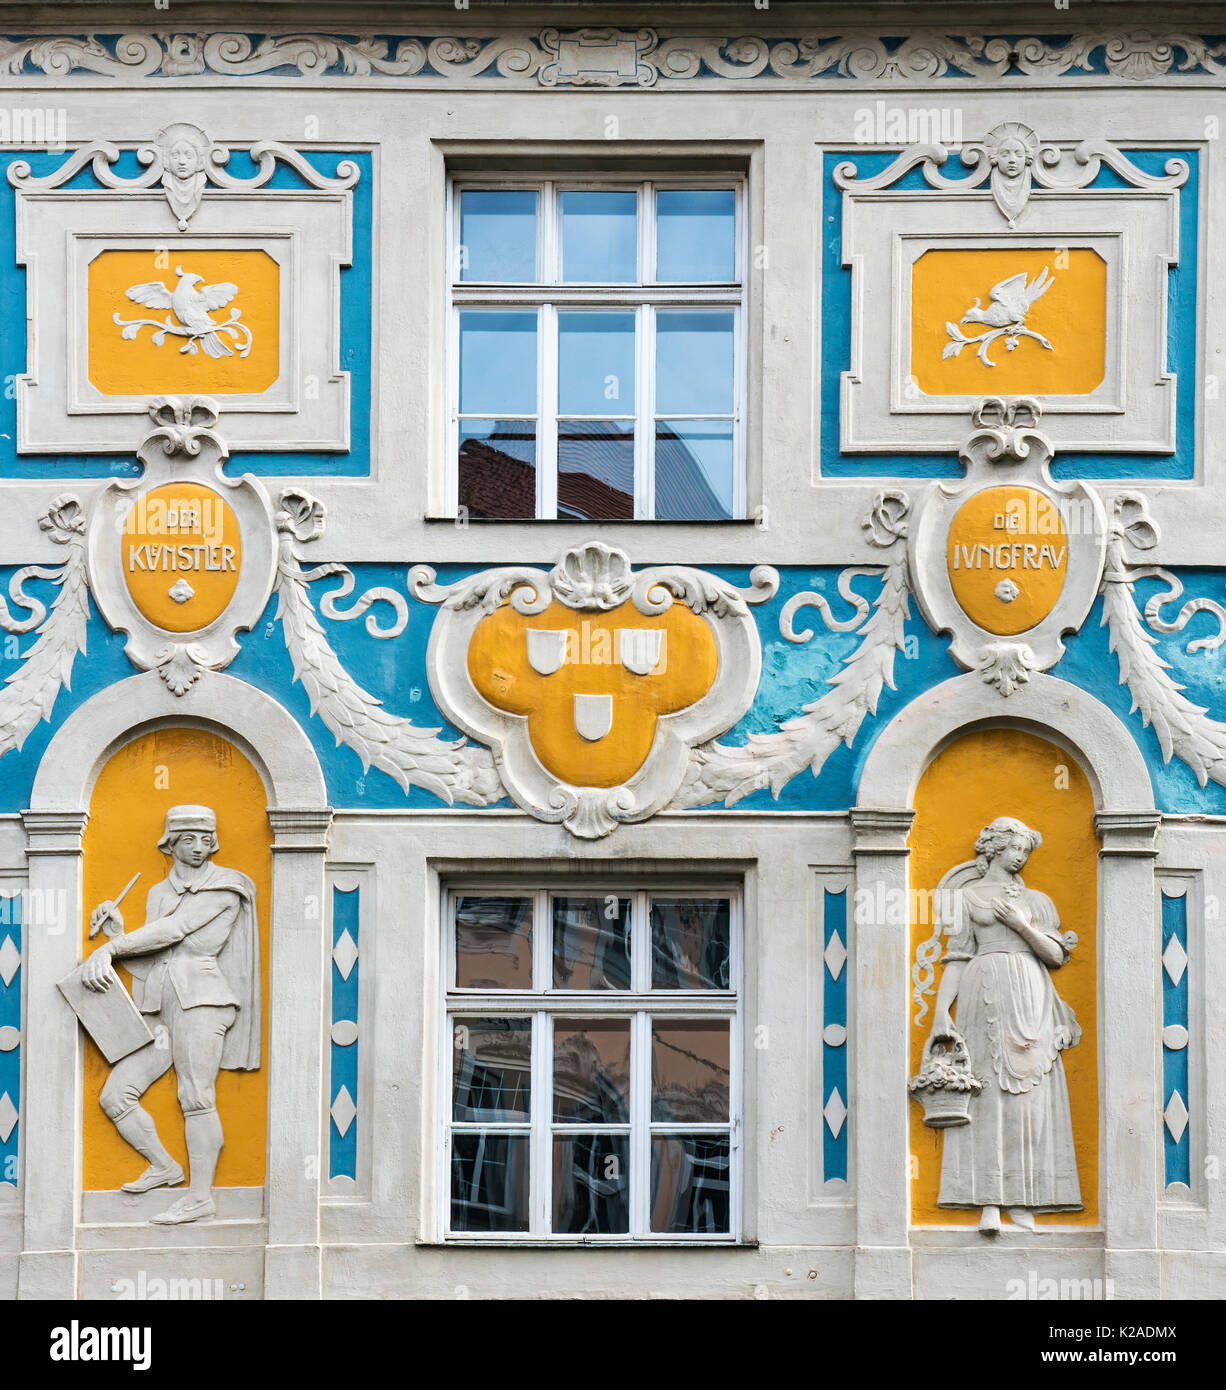 Architectural detail of the facade of Ruffinihaus or Ruffini House, Munich, Bavaria, Germany - Stock Image